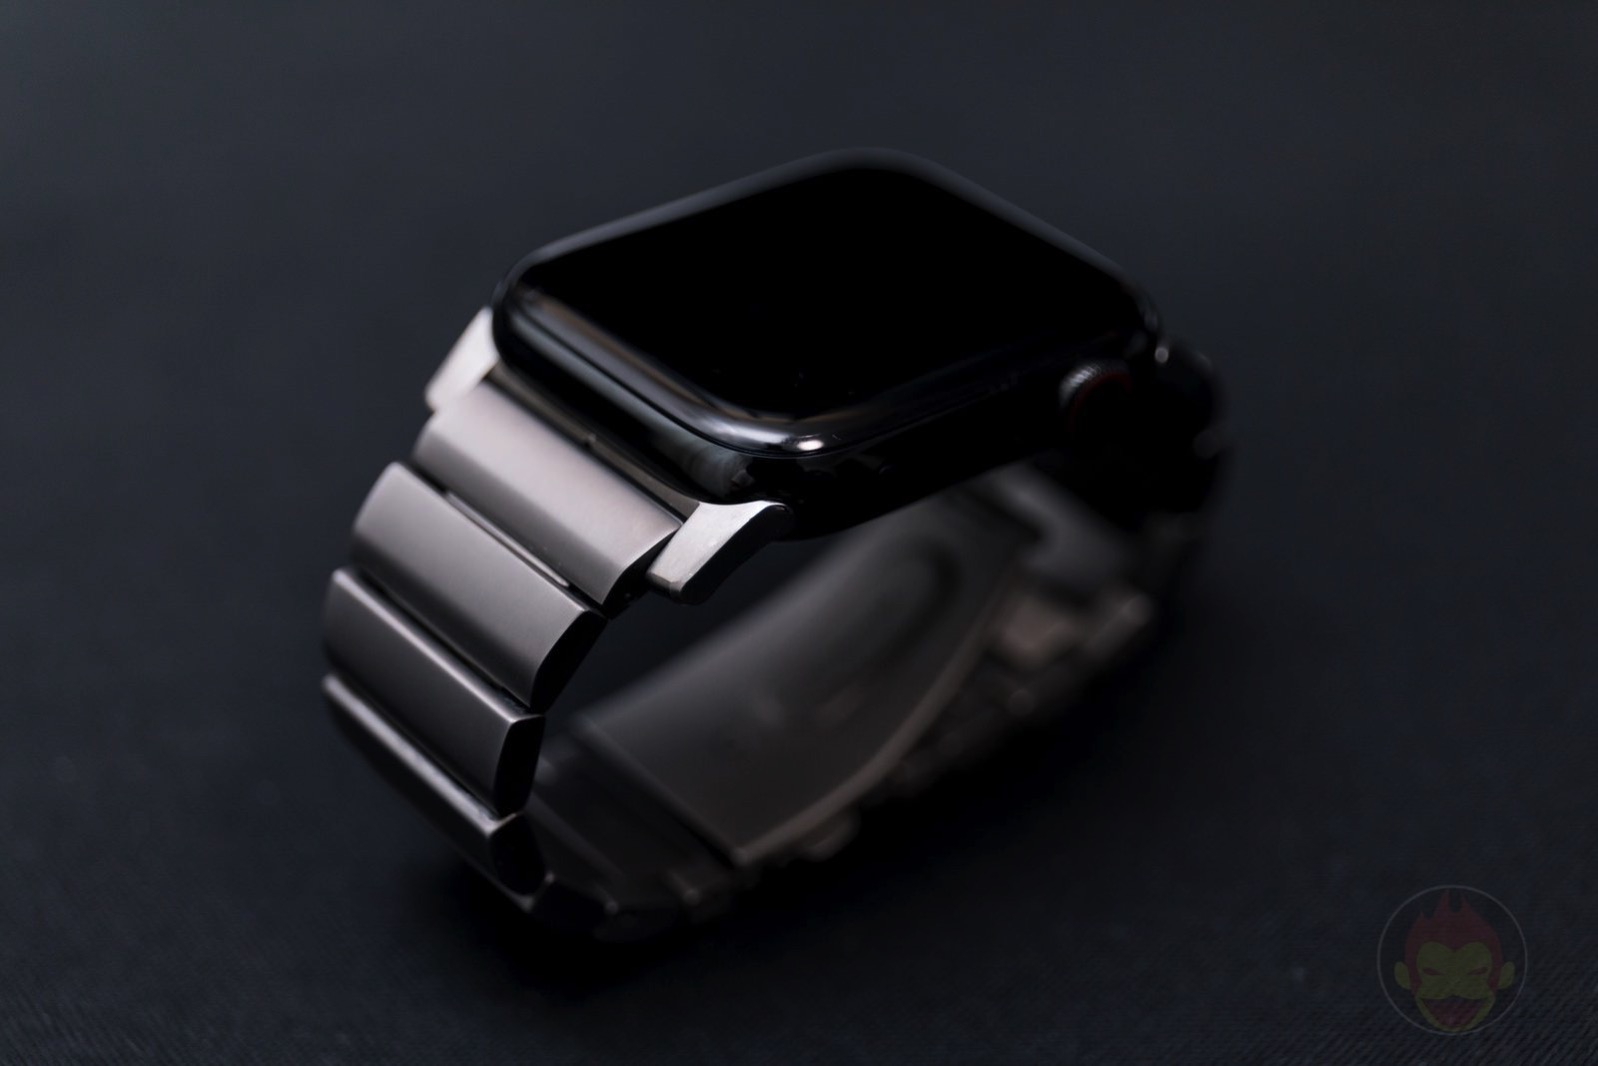 Apple-Watch-Nomad-Titanium-Band-Review-51.jpg